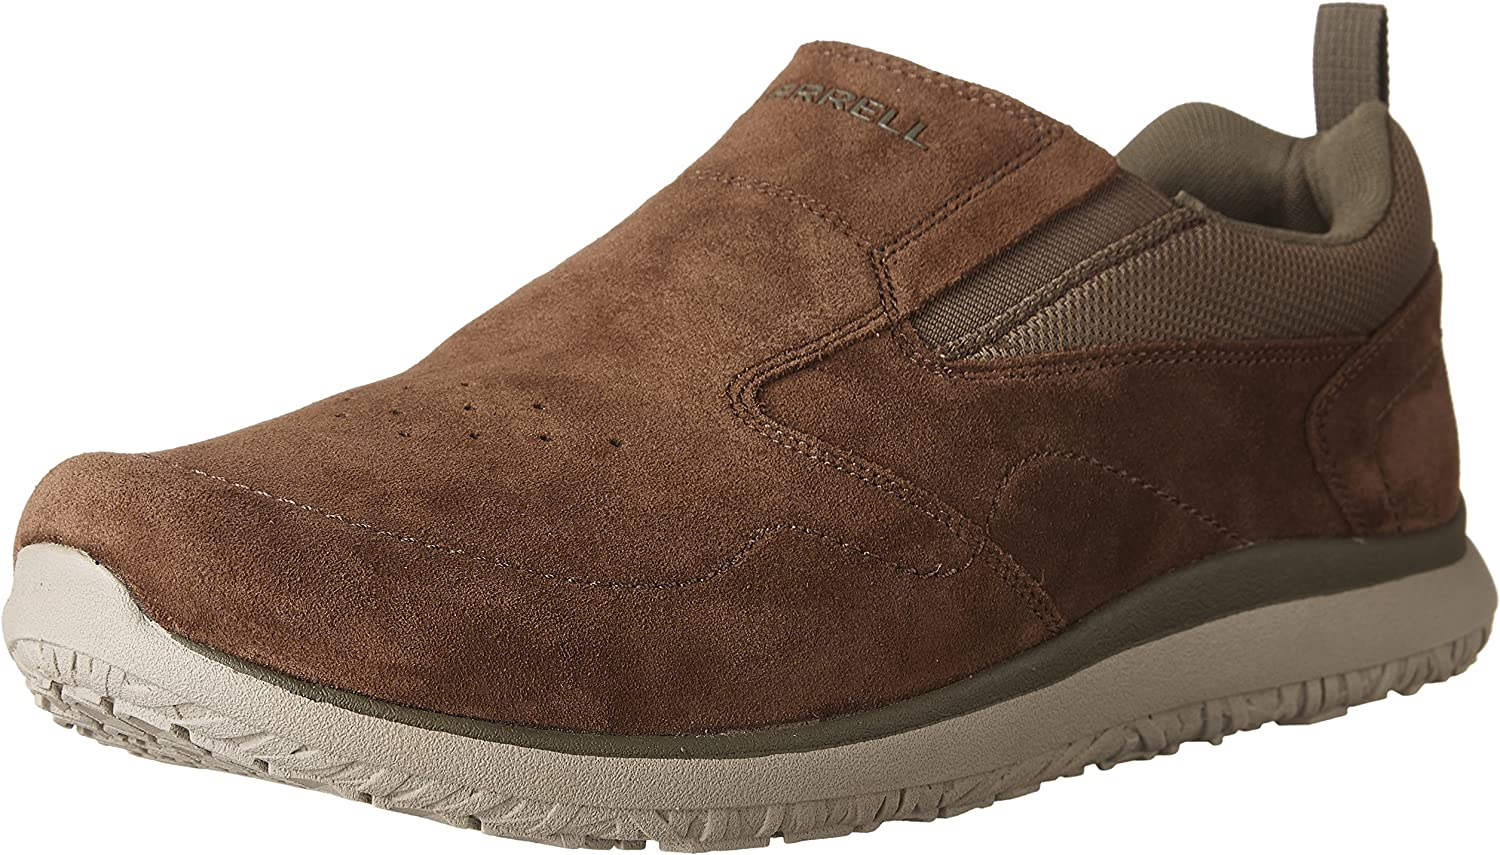 Merrell Men's Getaway Locksley Moc LTR shoes